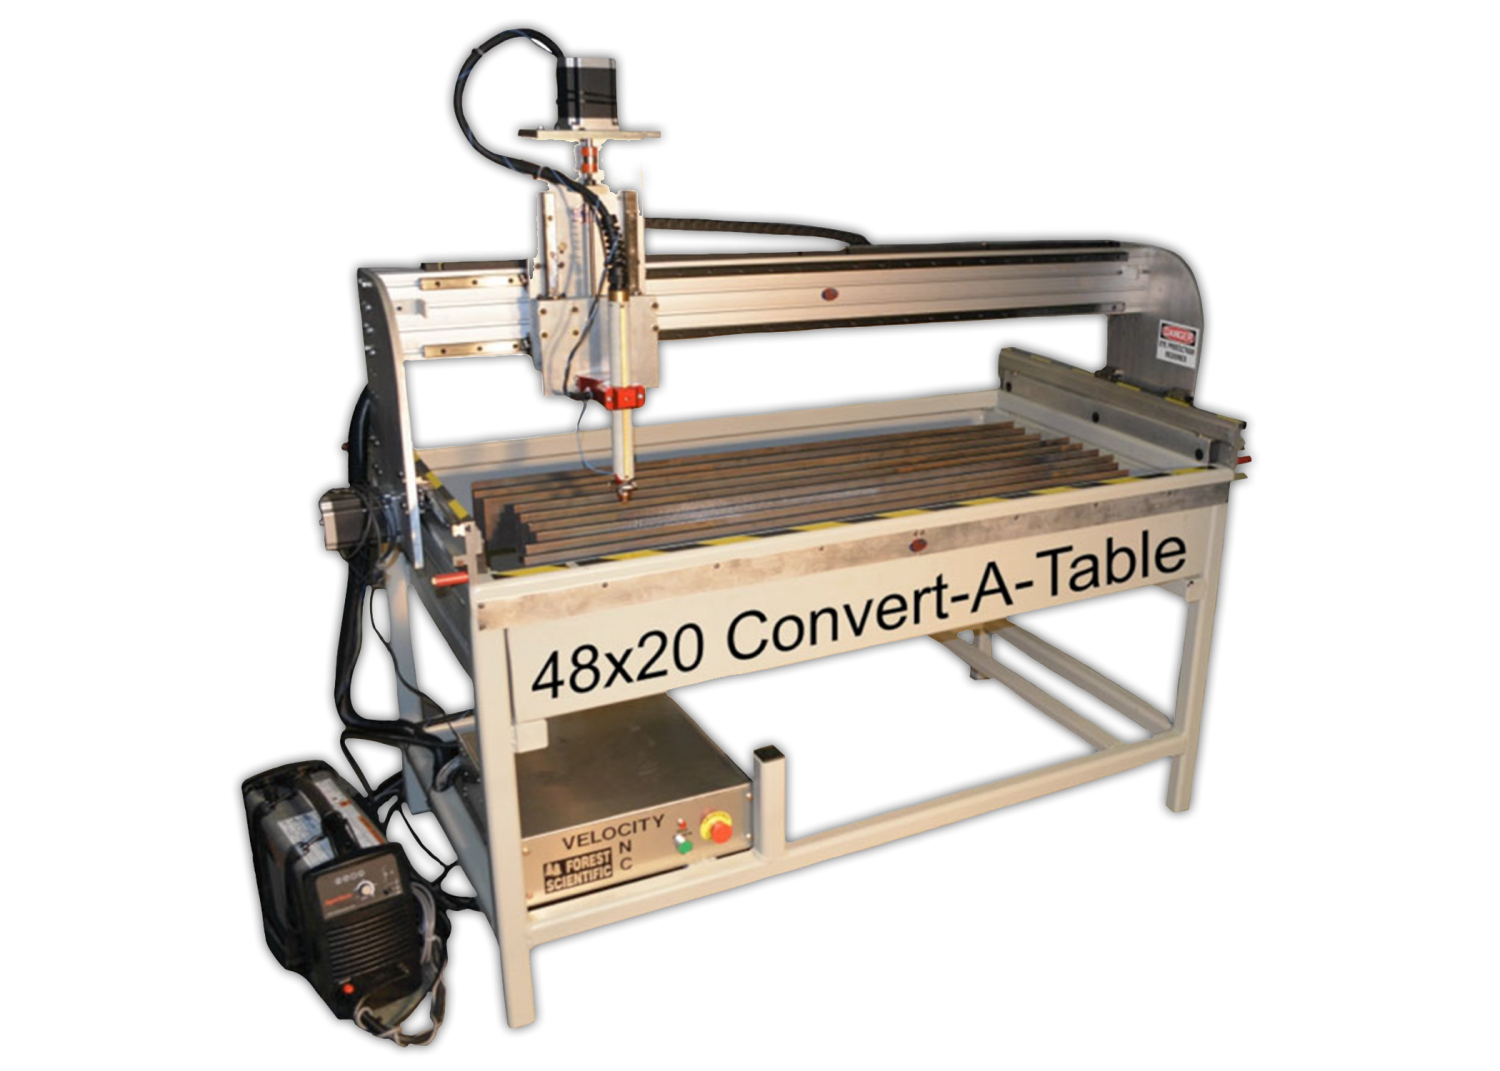 Convert-A-Table Plasma Cutter/Router Image